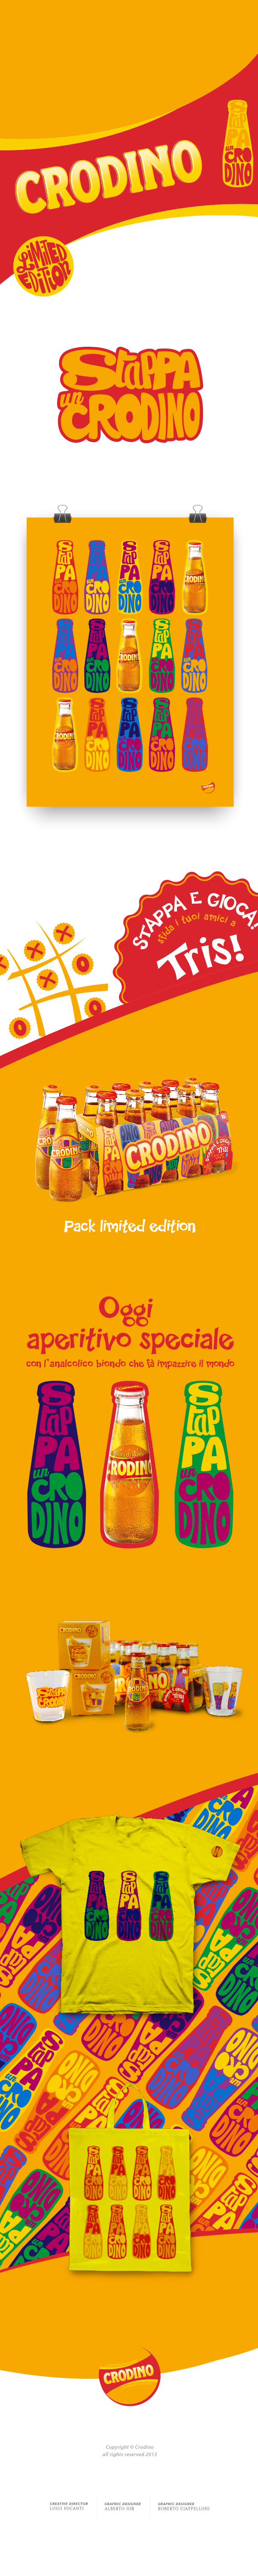 Crodino - Pack limited edition